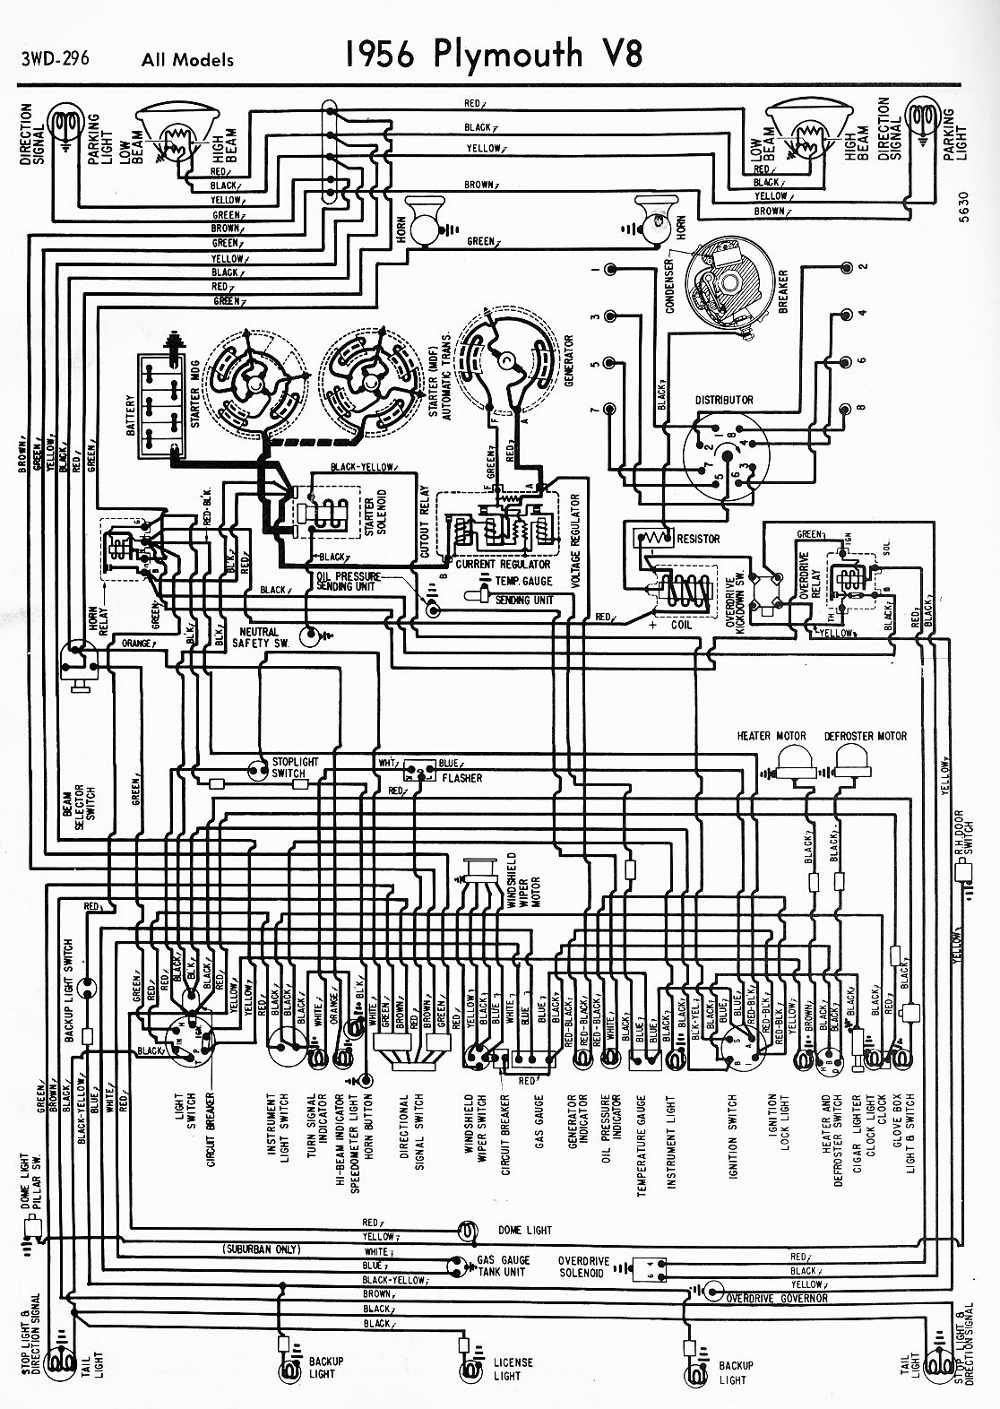 hight resolution of wiring diagrams of 1958 plymouth 6 all models wiring diagram go wiring diagrams of 1958 mercury